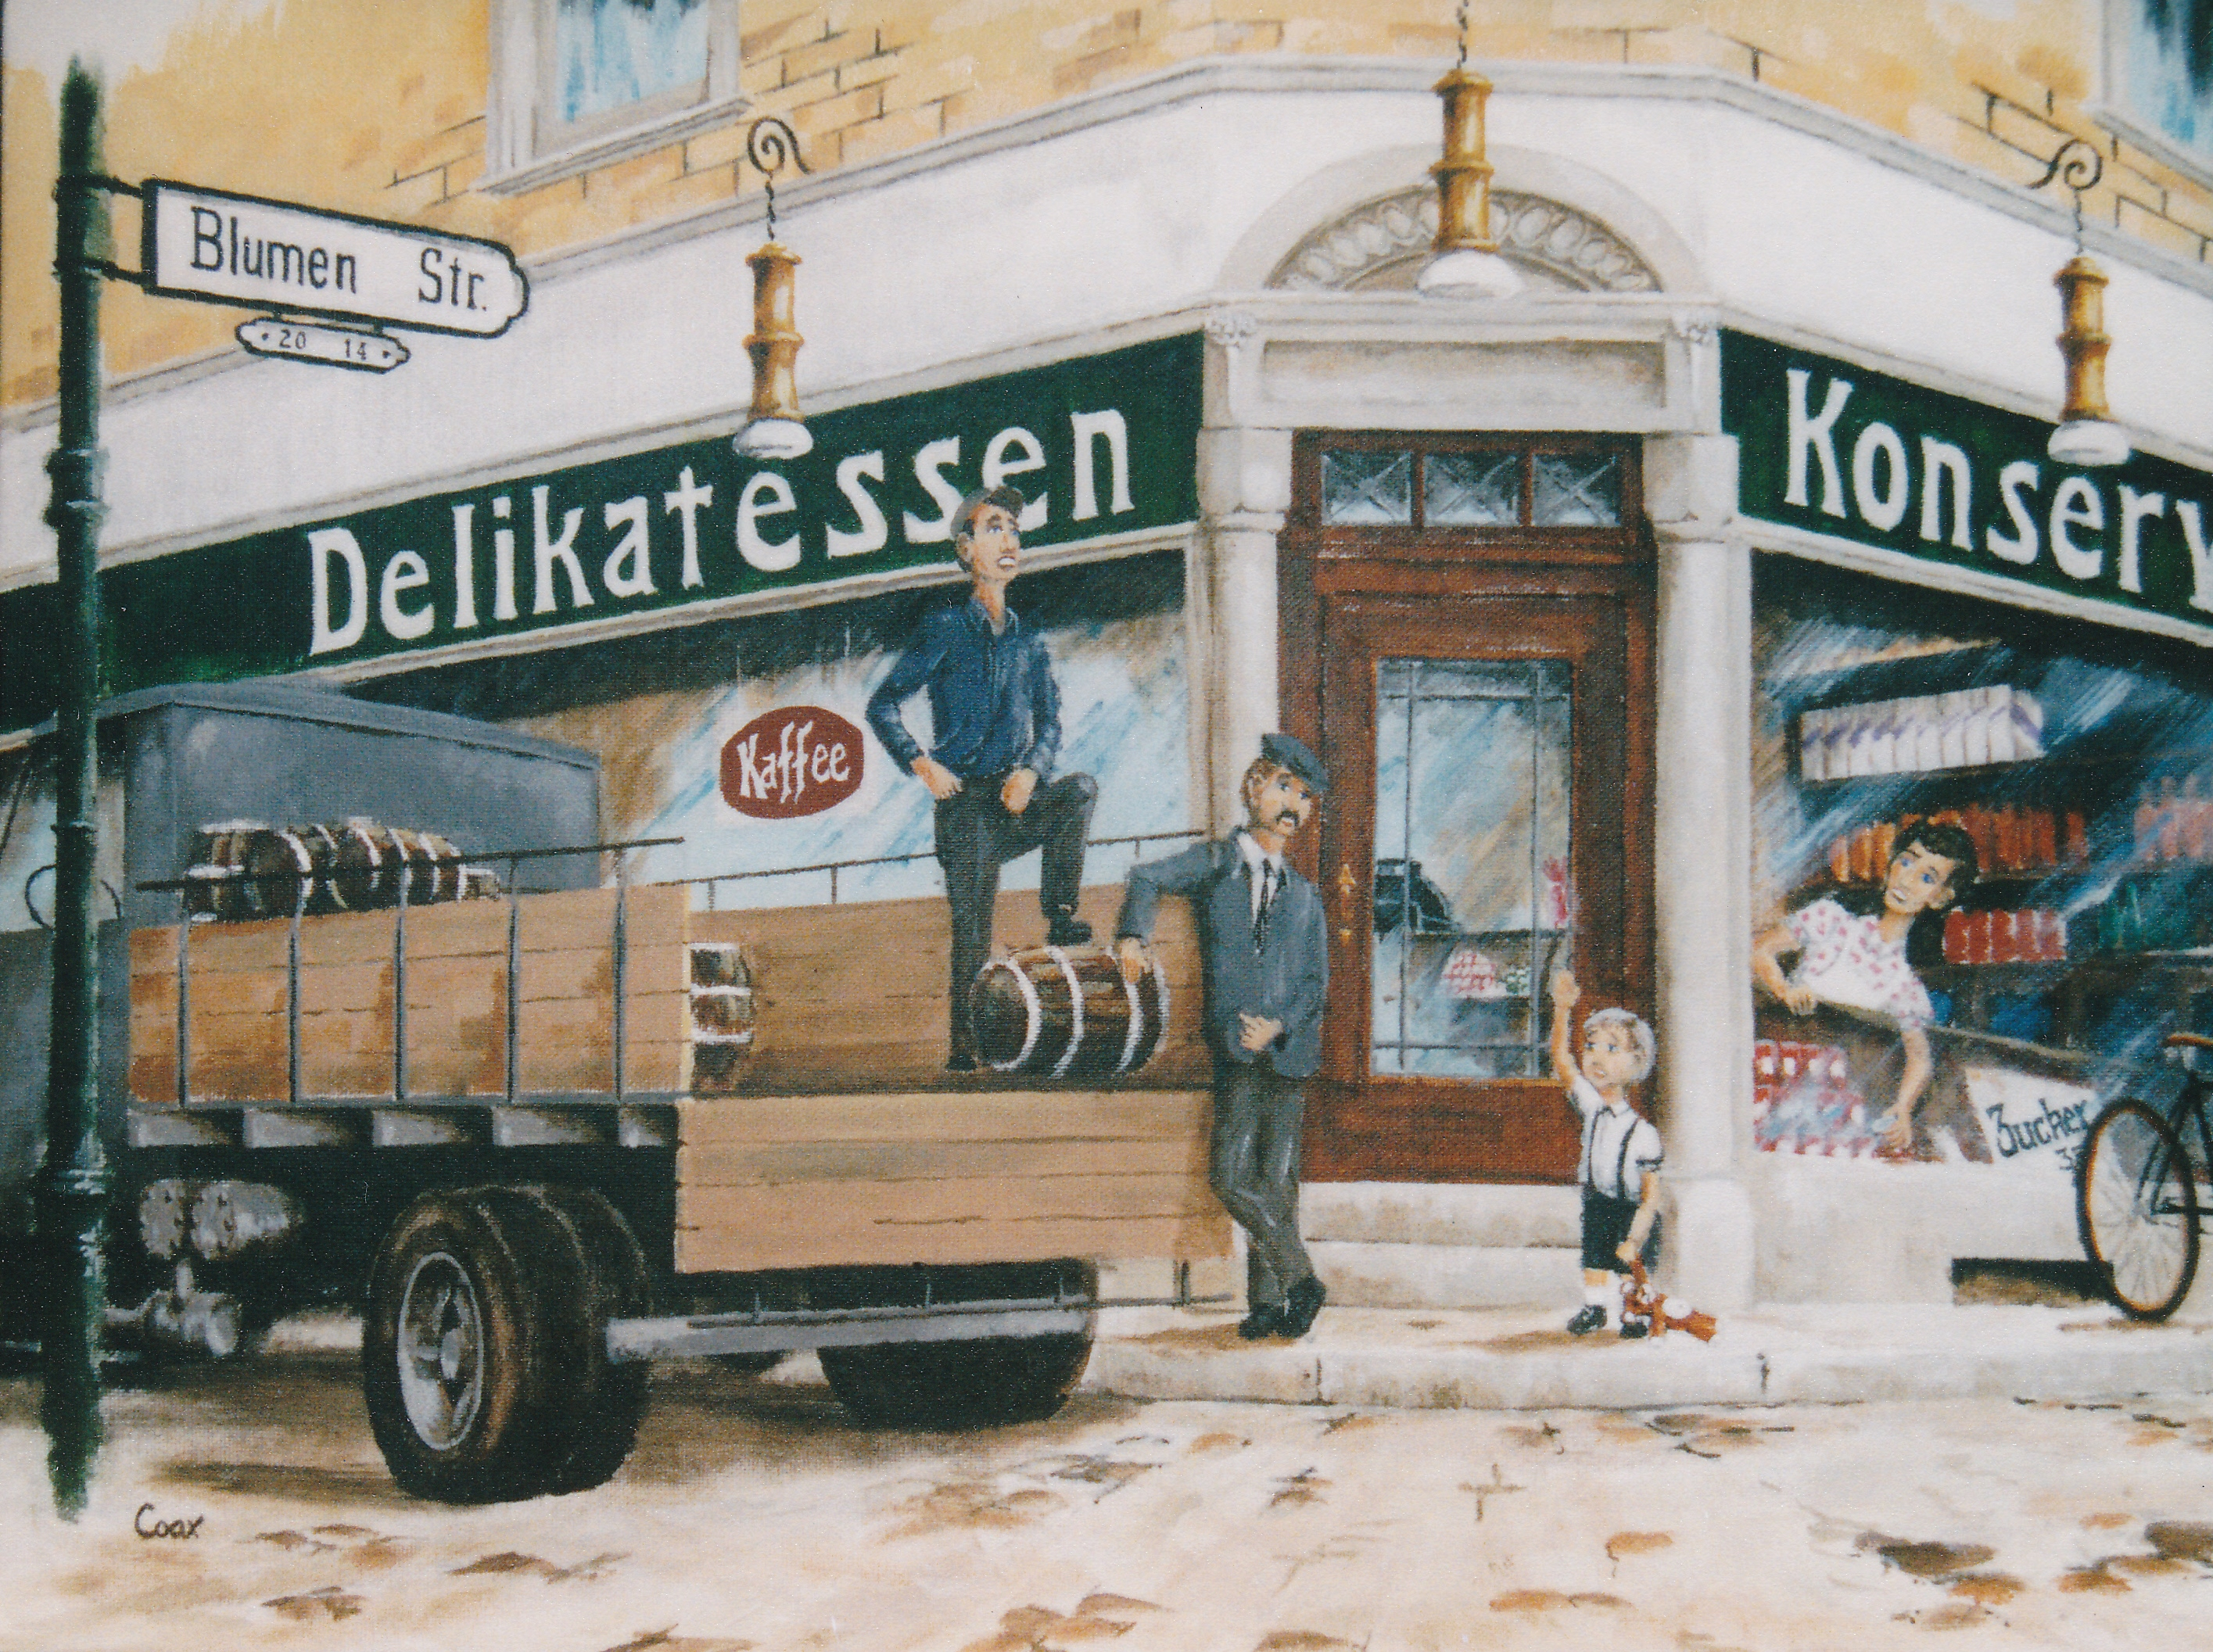 Painting of delivery truck